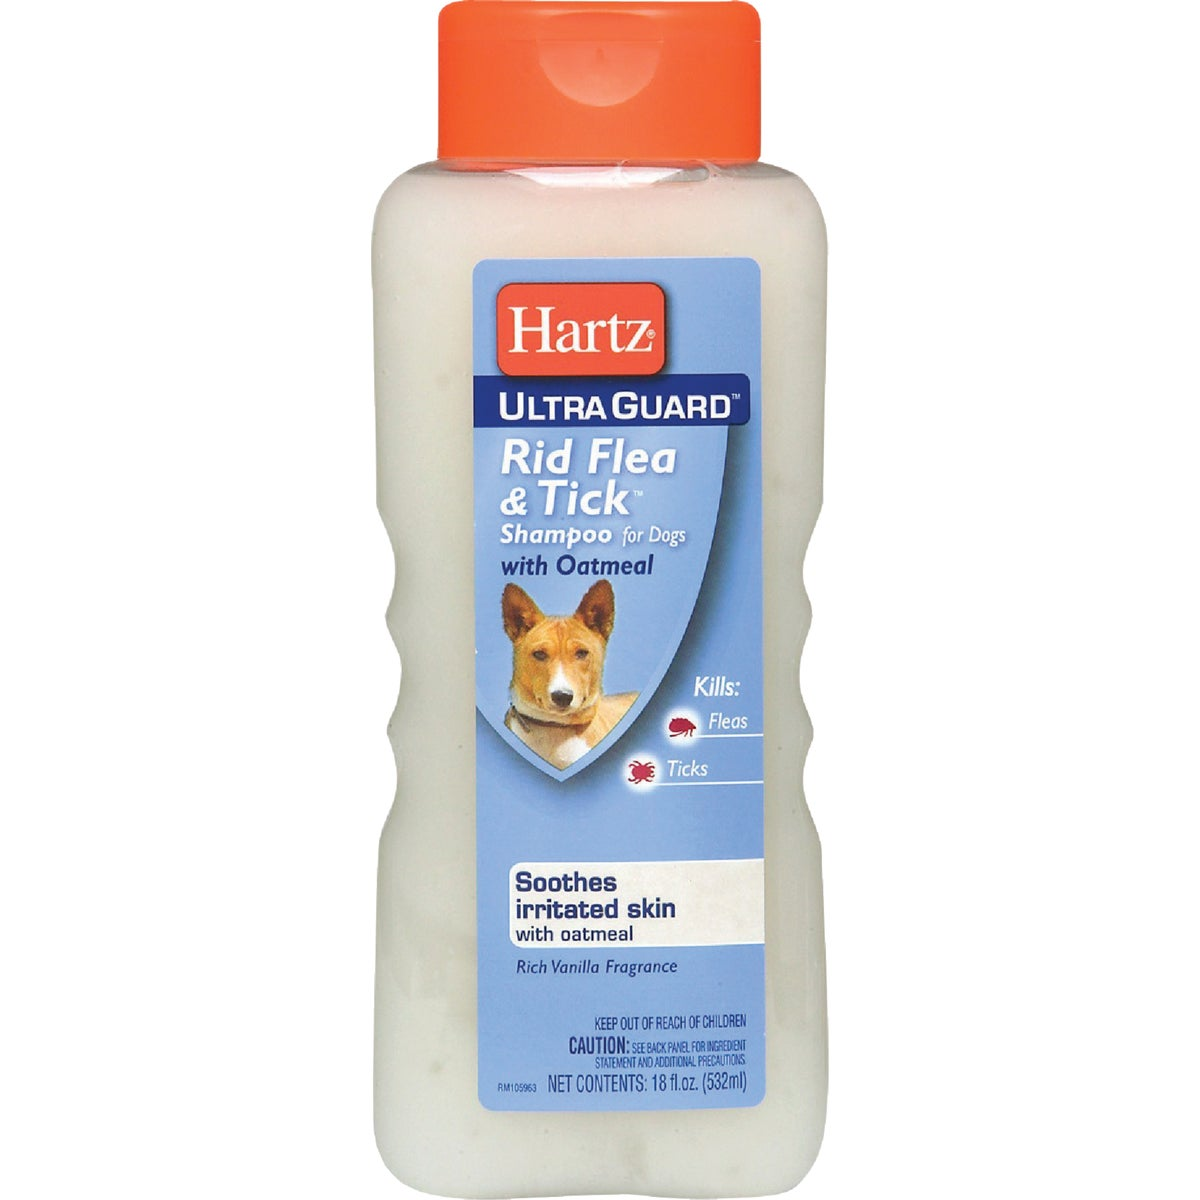 18OZ OATML FLEA SHAMPOO - 02305 by Hartz Mountain Corp